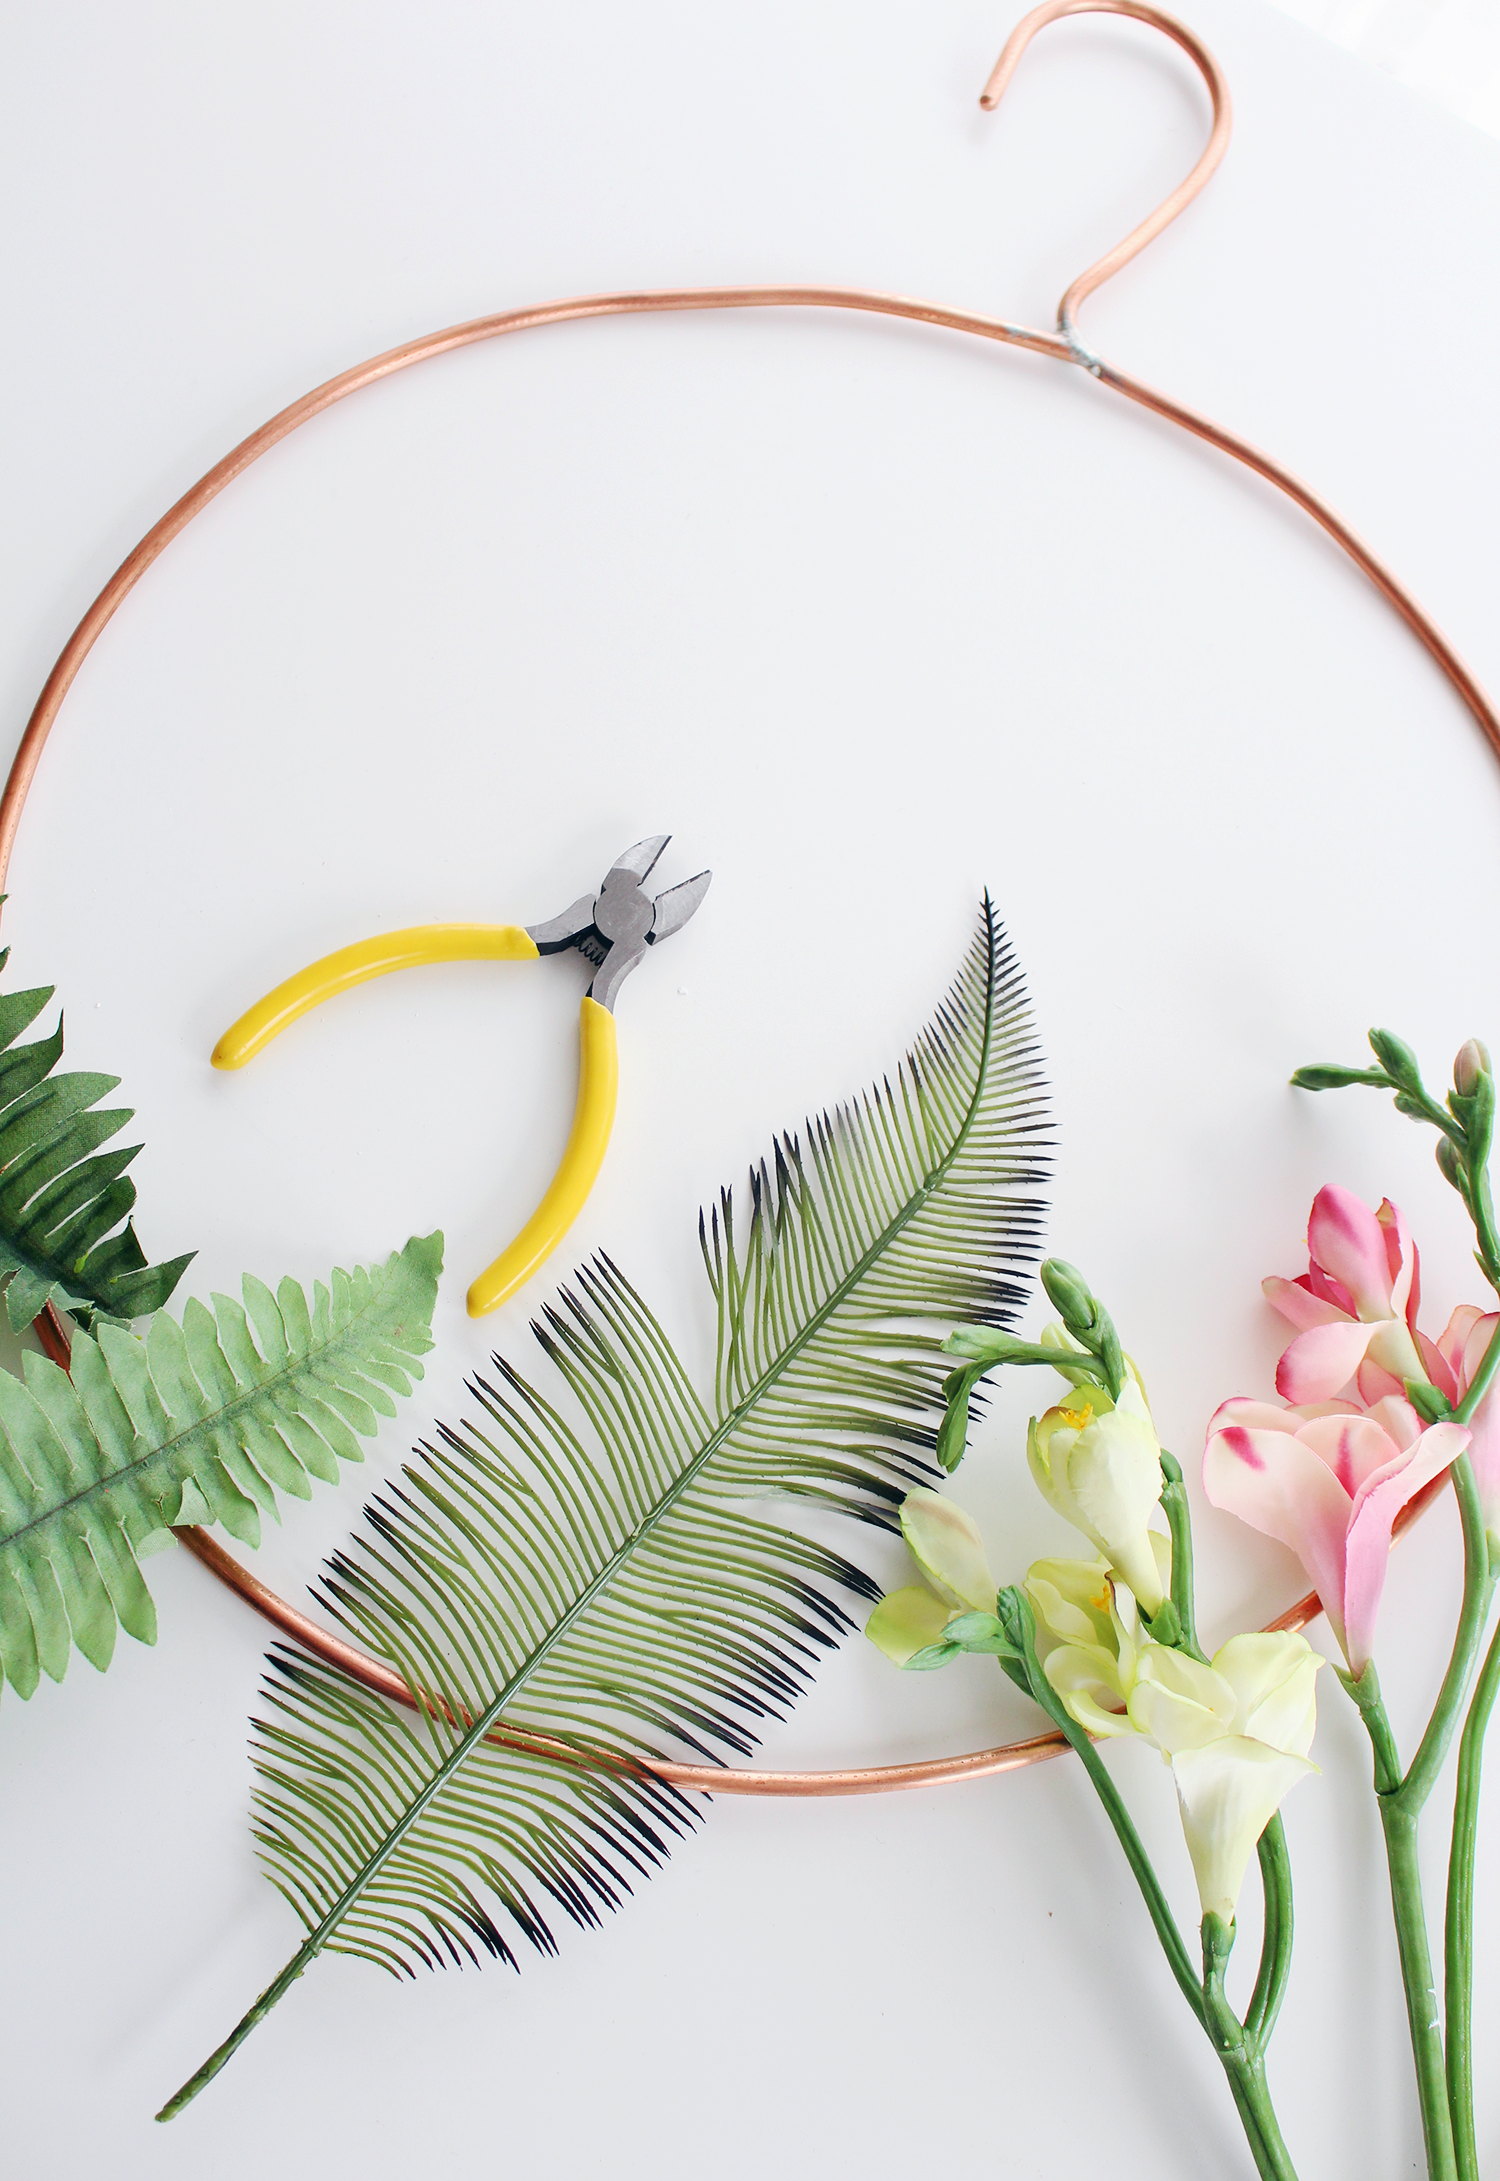 Faux Floral Skills Workshop at the Lily & Val Flagship Store in Pittsburgh. Learn how to make your own modern wreath with a tropical feel